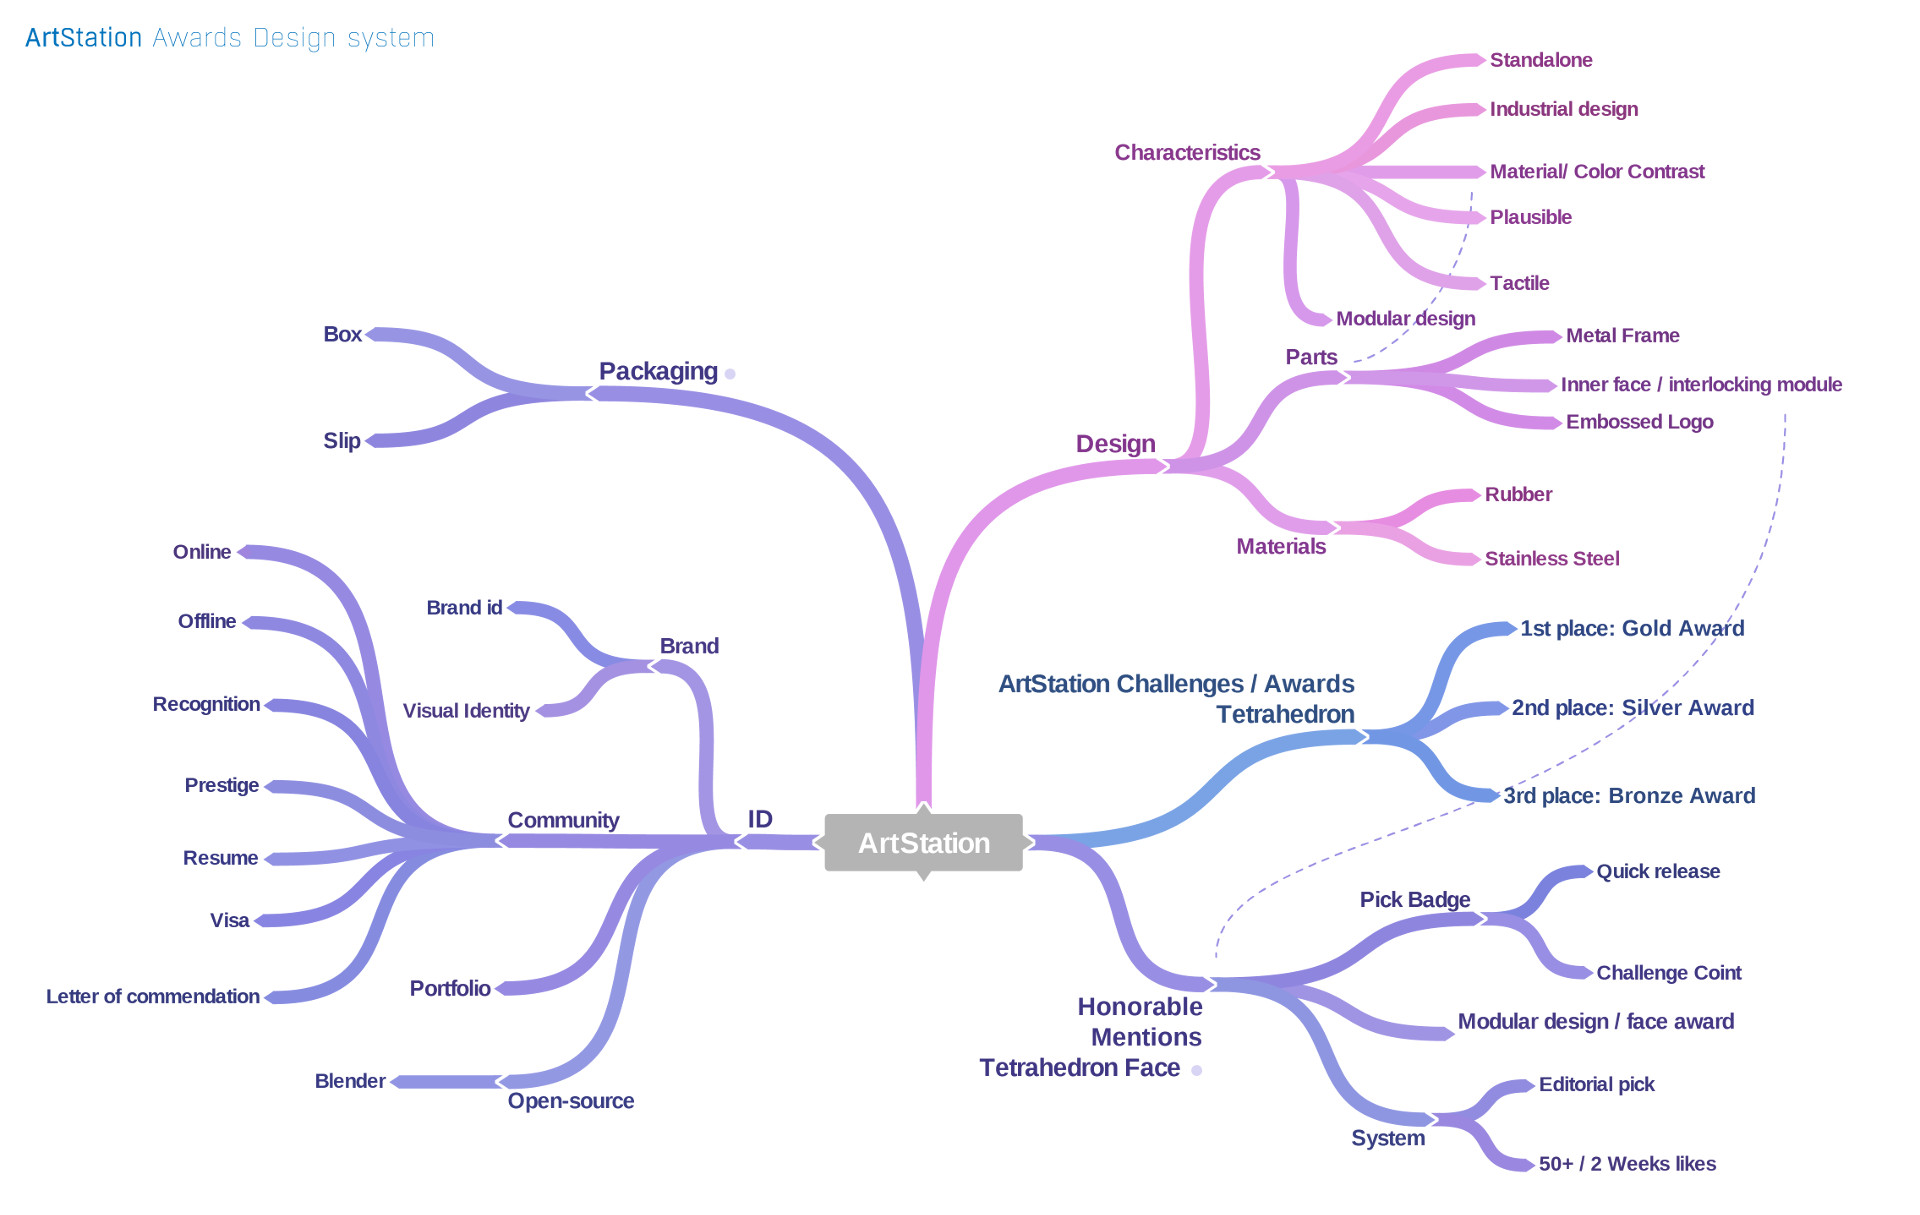 Ivan's mind map for the award designs